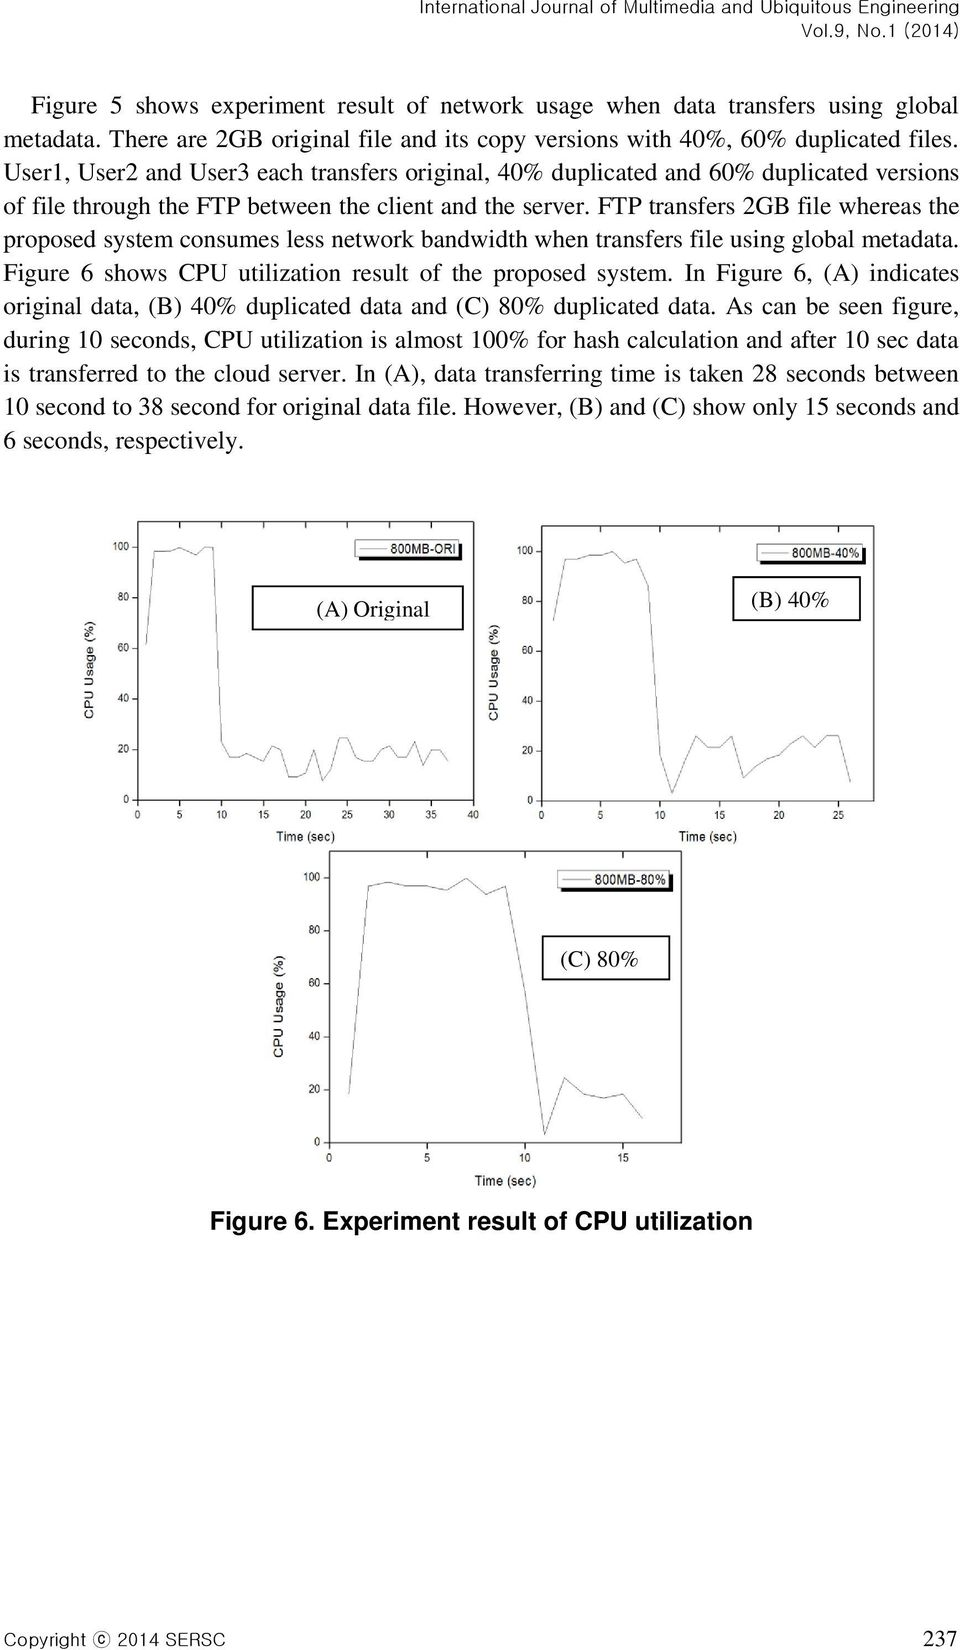 FTP transfers 2GB file whereas the proposed system consumes less network bandwidth when transfers file using global metadata. Figure 6 shows CPU utilization result of the proposed system.